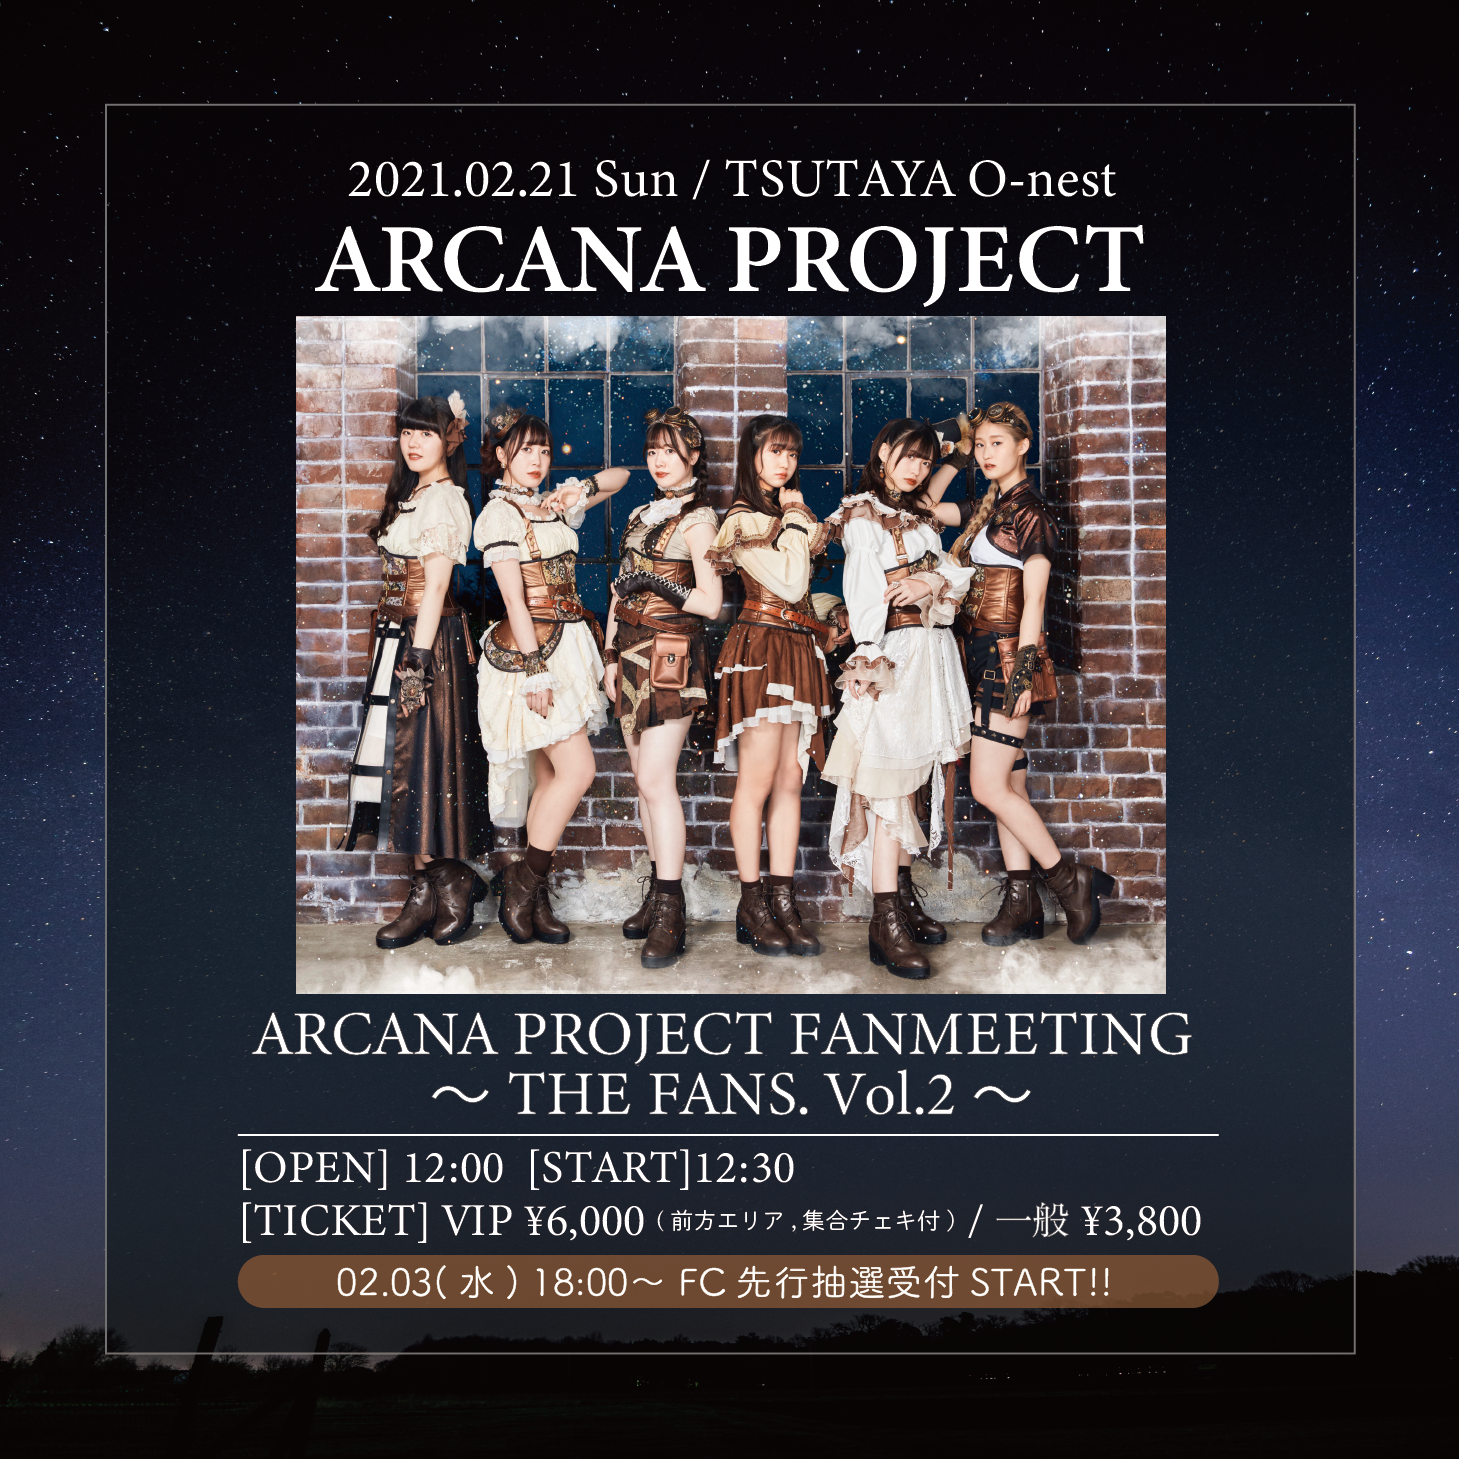 ARCANA PROJECT FANMEETING 〜THE FANS. Vol.2〜